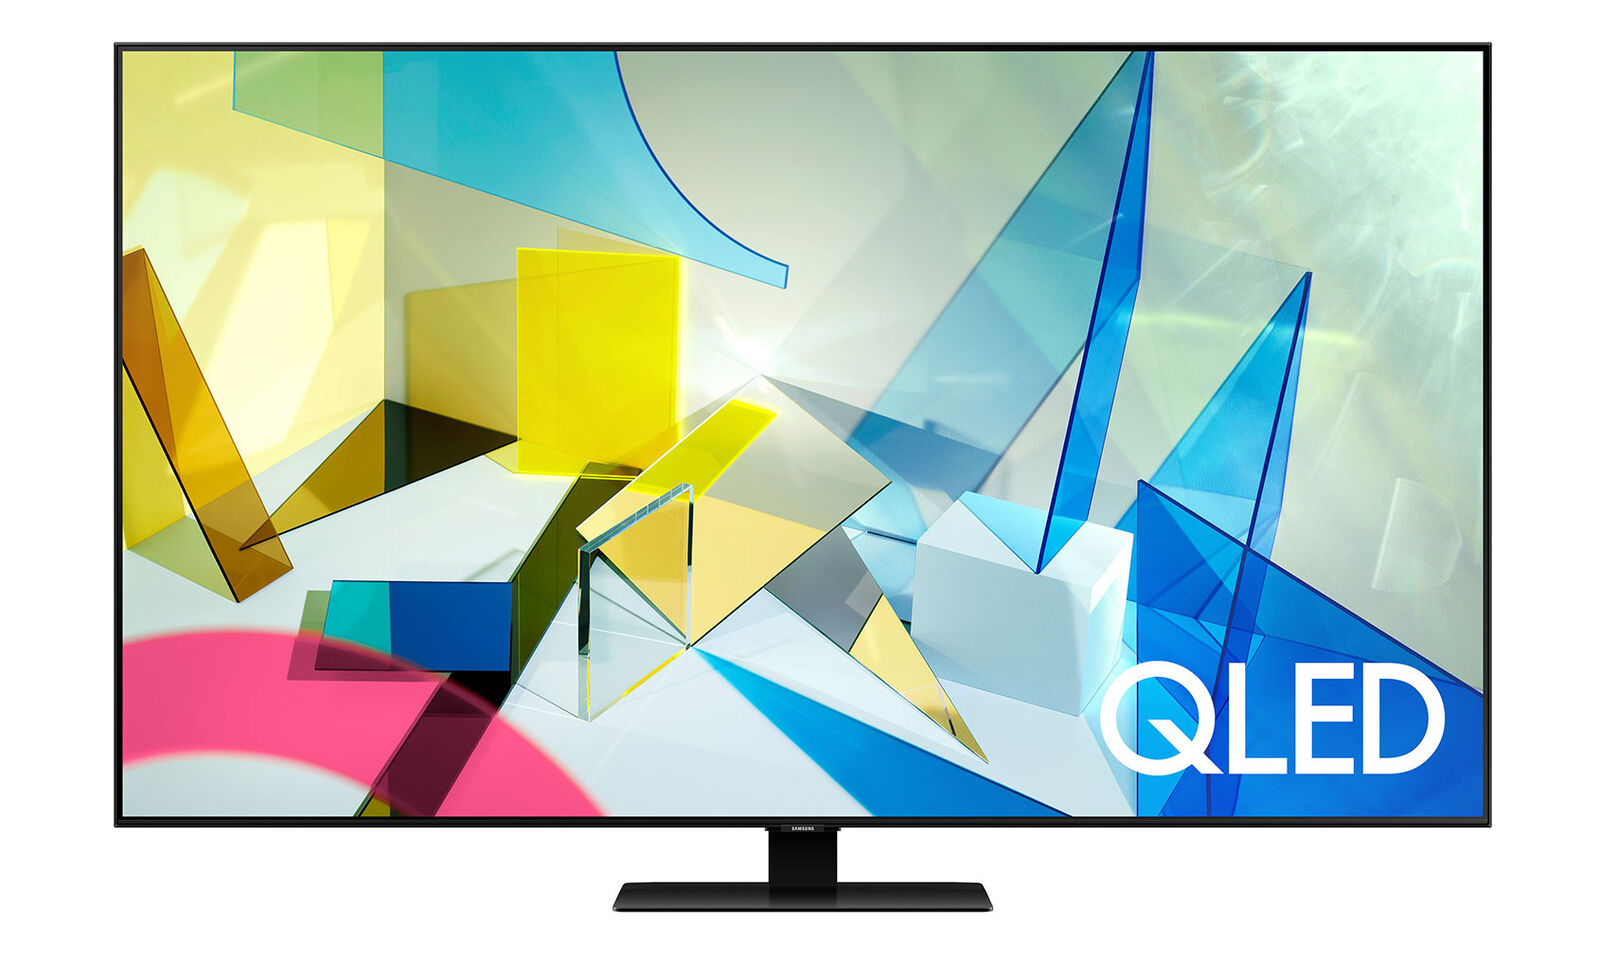 Samsung QN85Q80T 85 4K QLED Smart TV - Titan Black. Available Now for 2749.00